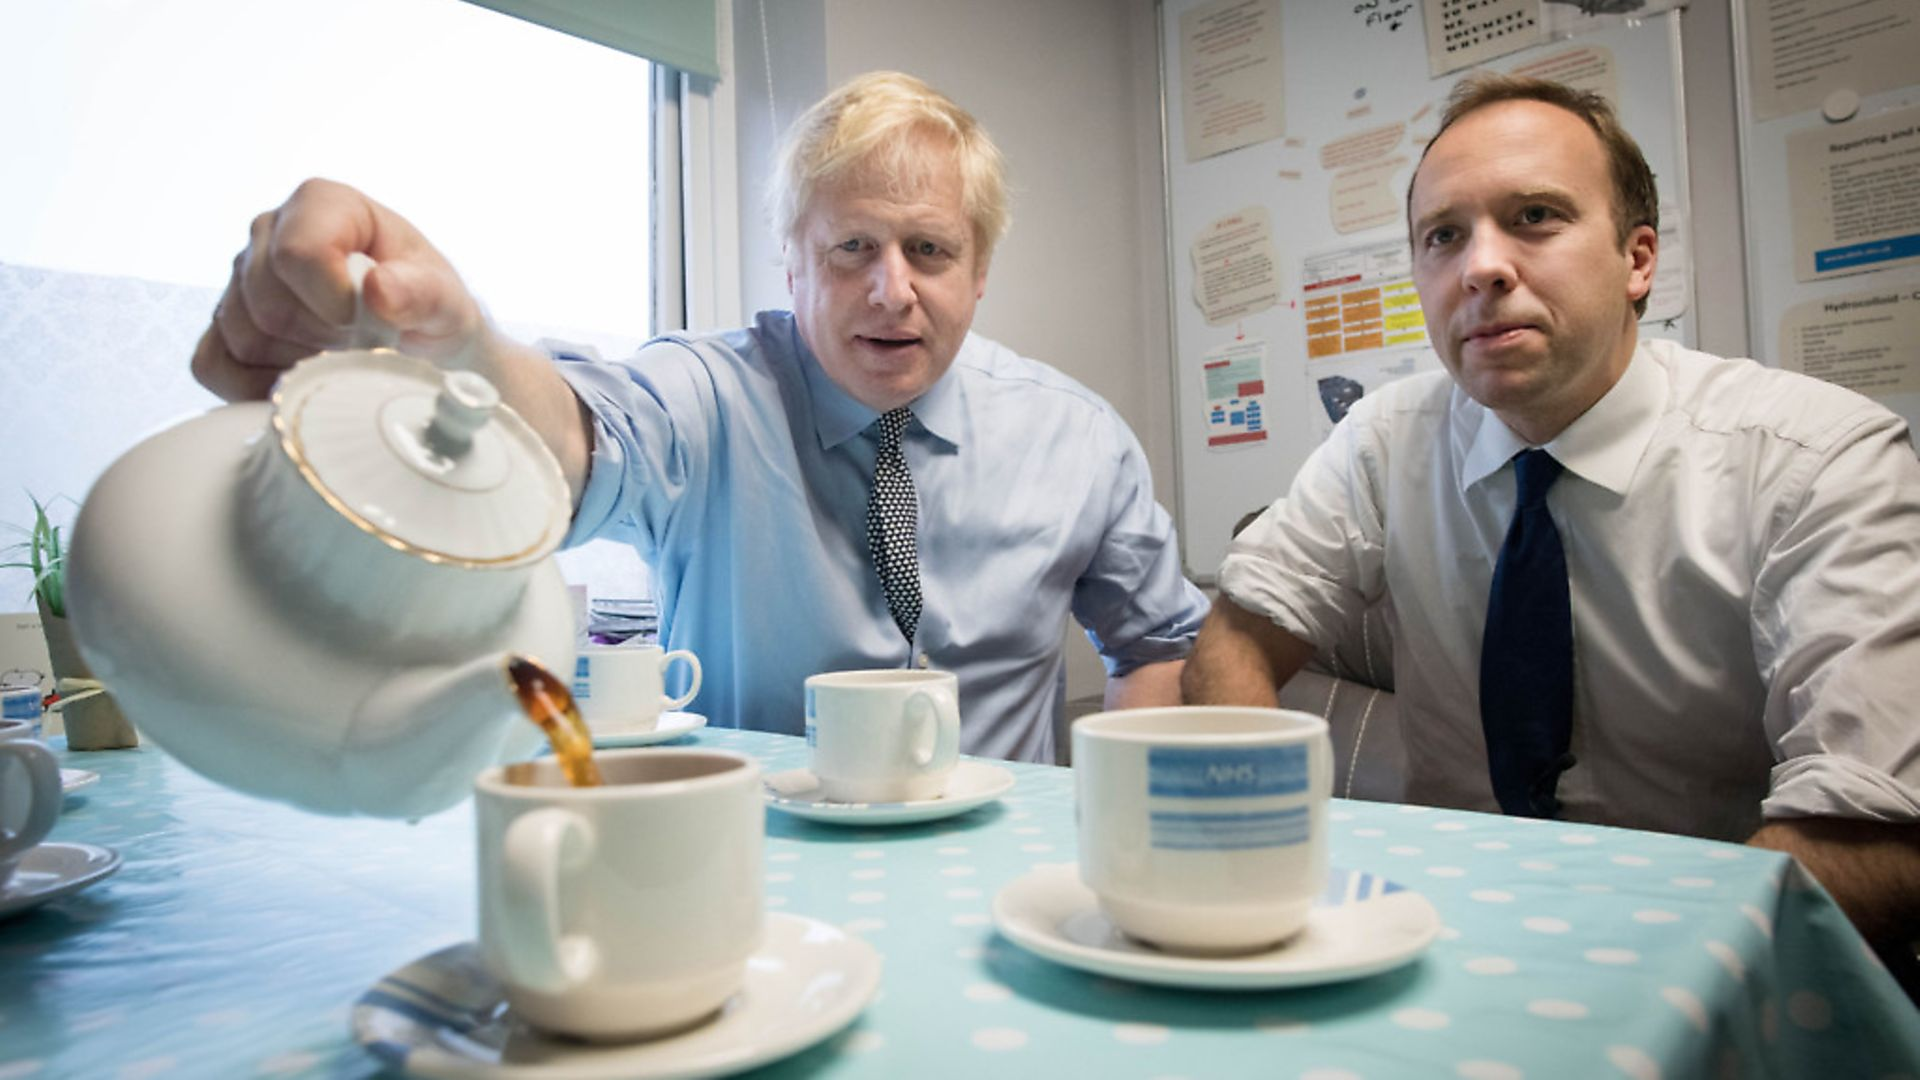 Prime Minister Boris Johnson (left) with Health Secretary Matt Hancock during a visit to Bassetlaw District General Hospital in Worksop. Photograph: Stefan Rousseau/PA Wire. - Credit: PA